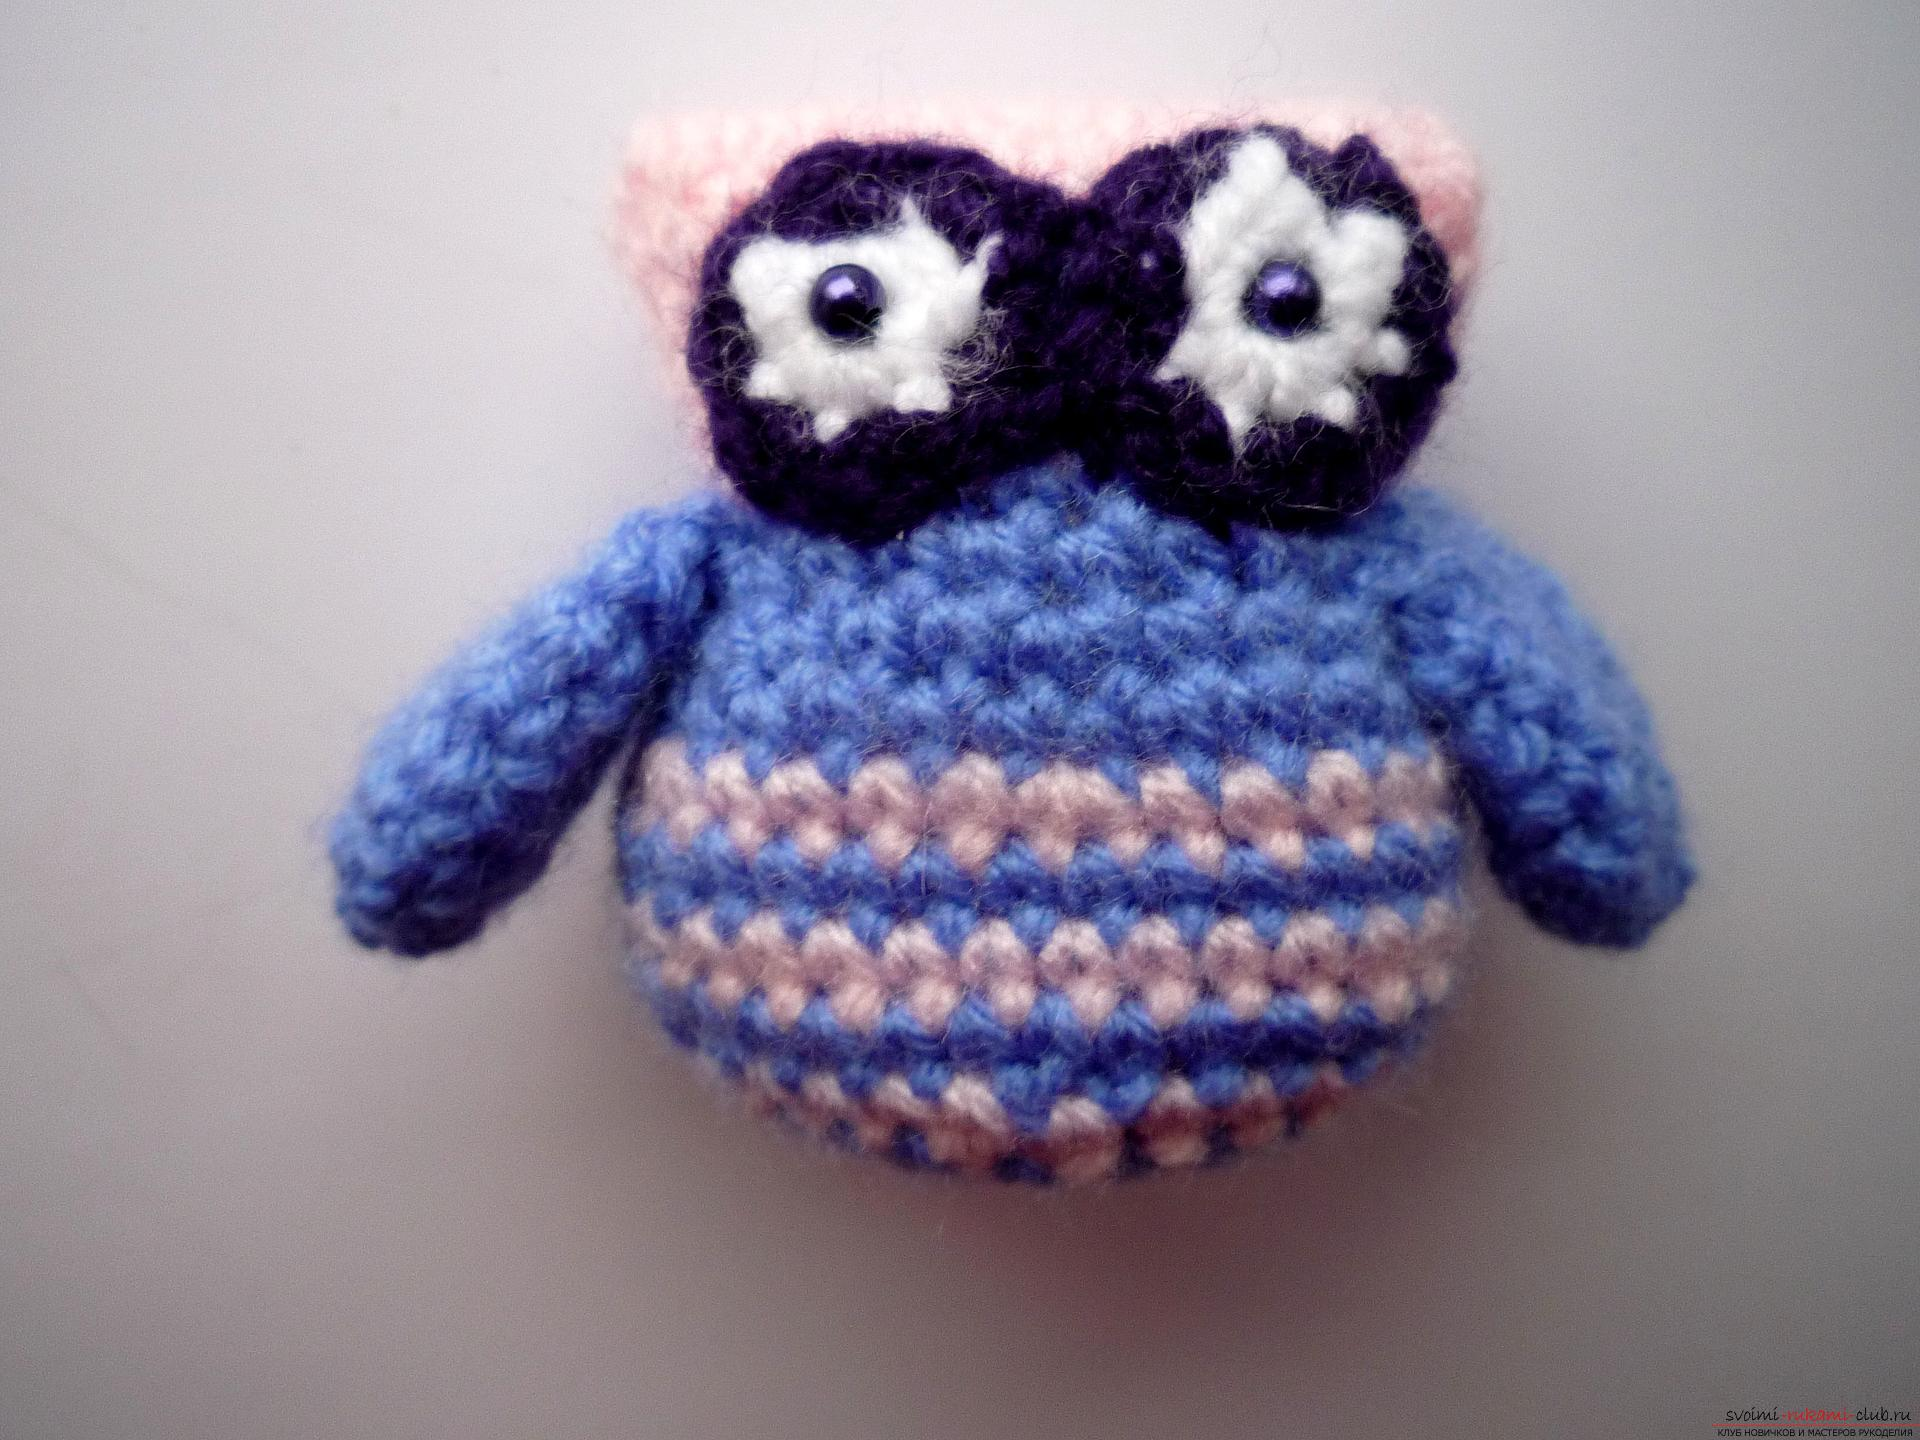 A detailed master-class will teach how to crochet a toy - an amenity in the amigurumi style. Photo №13